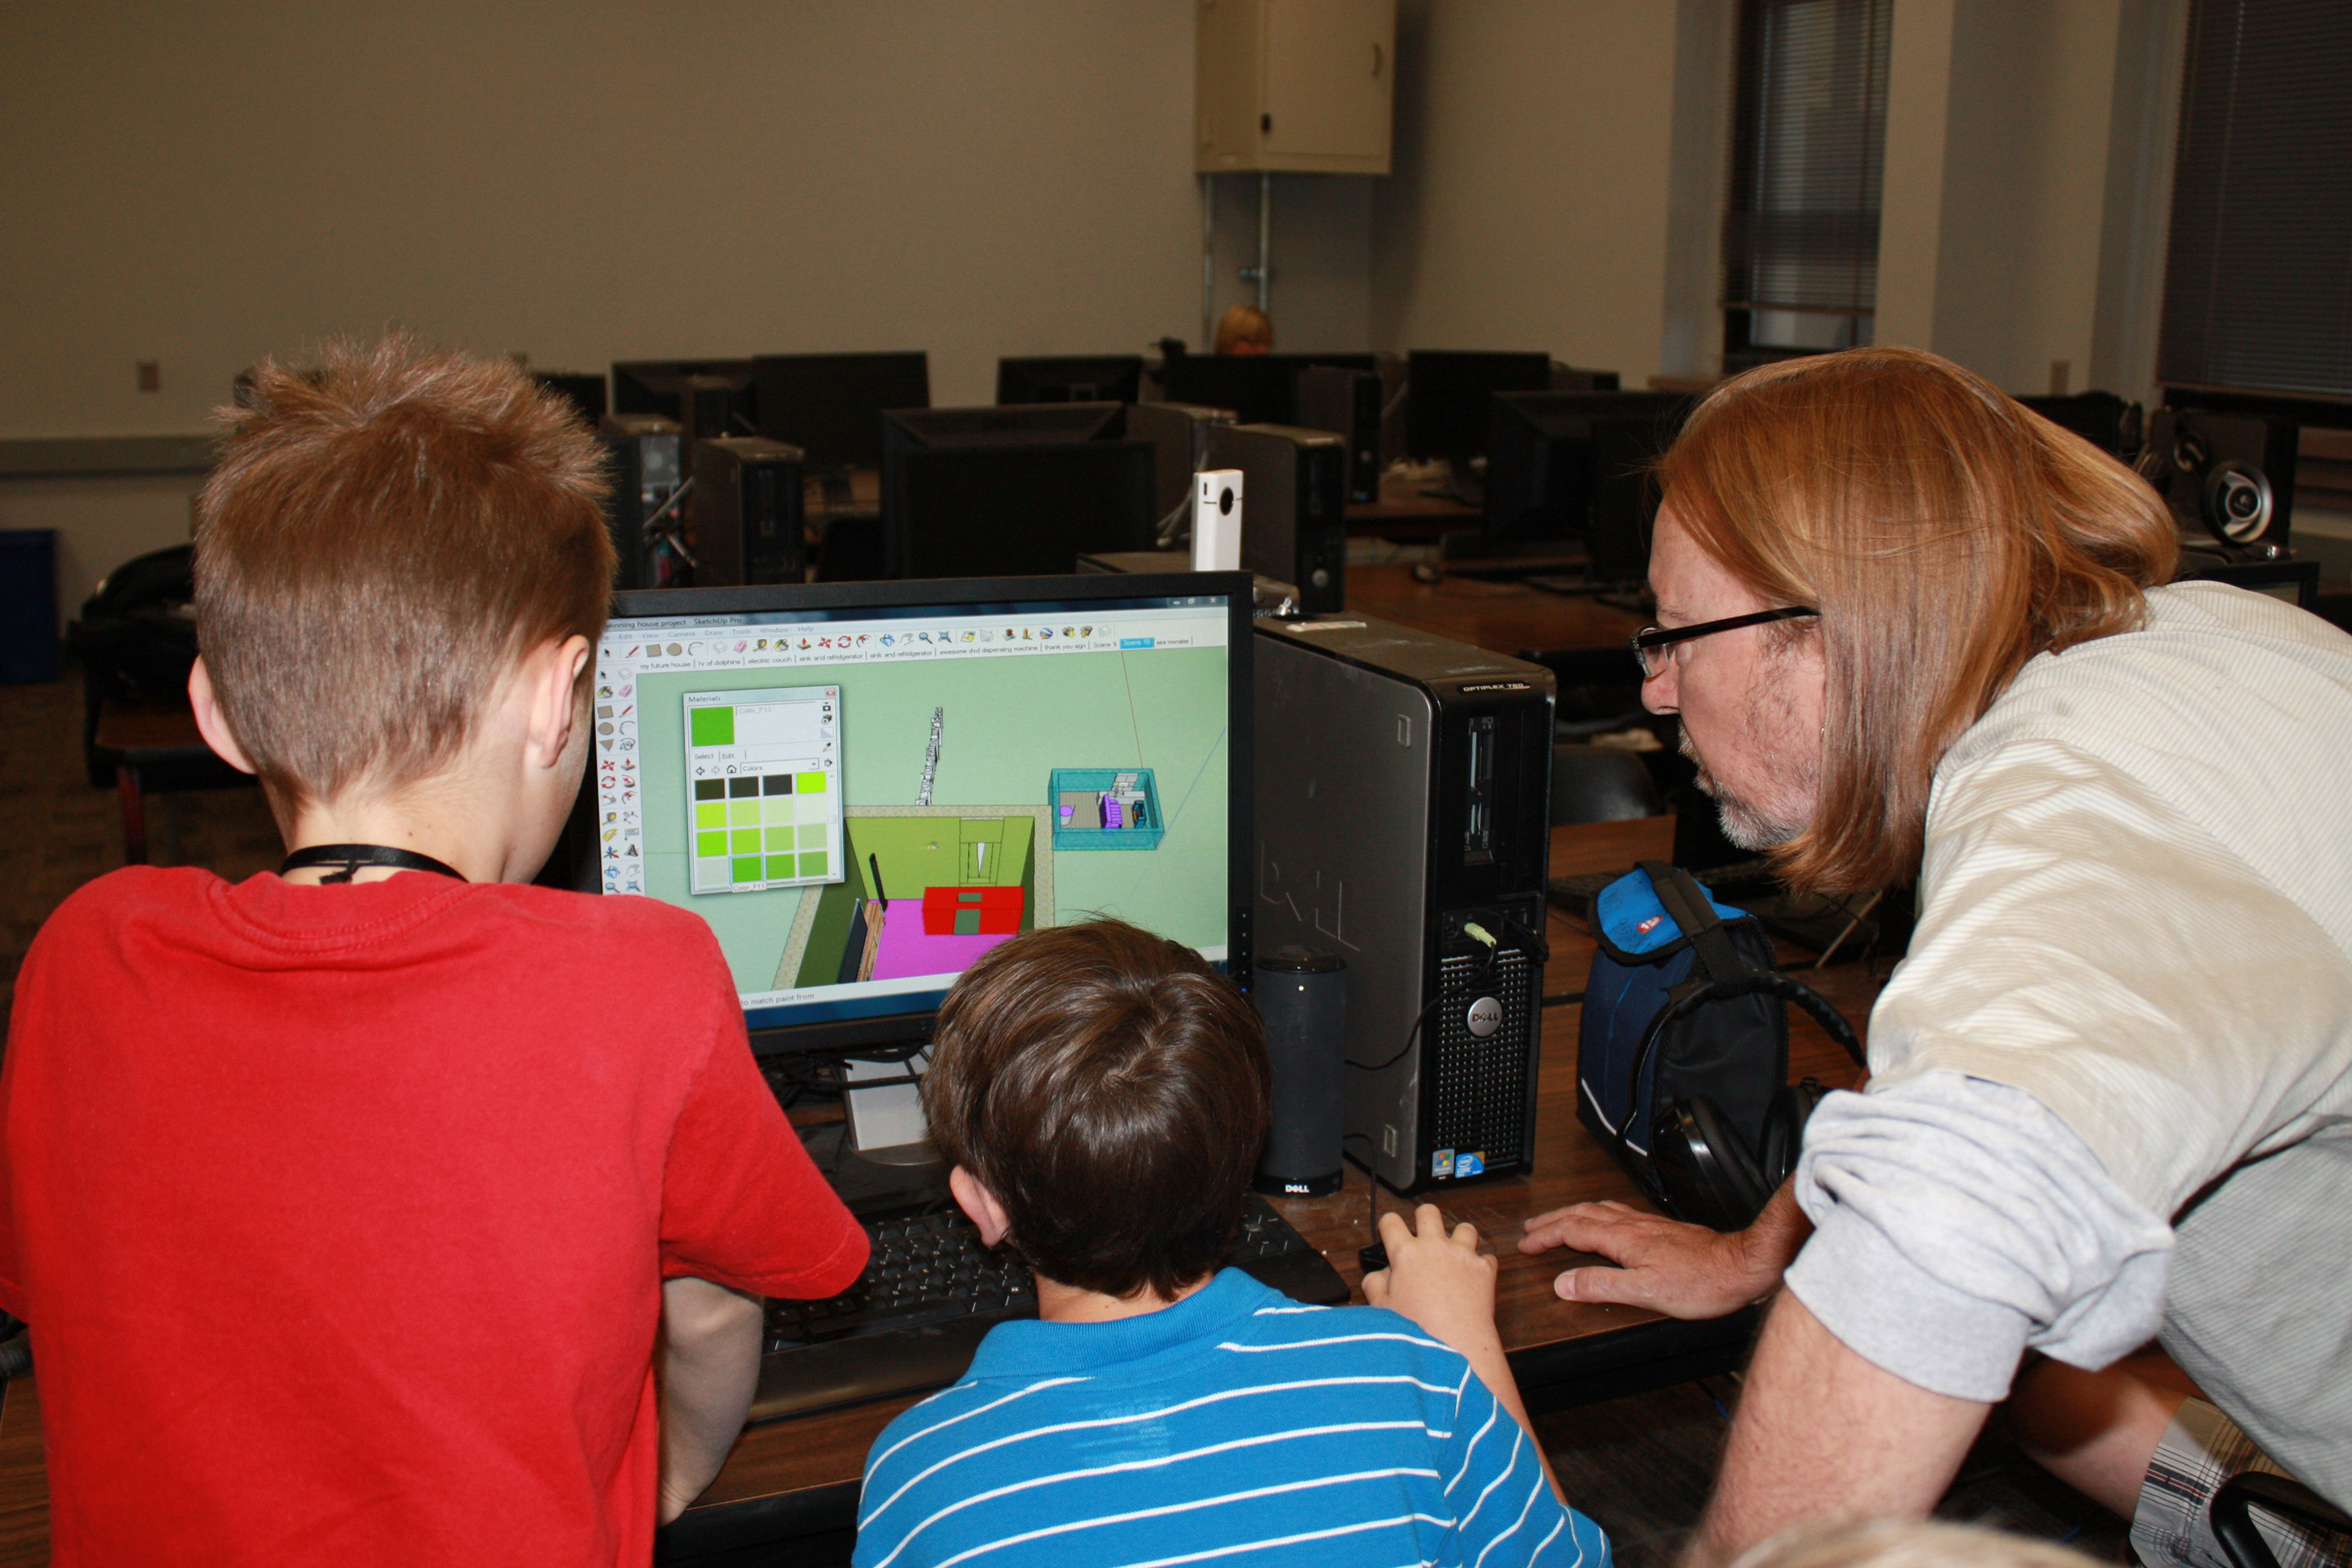 The University of Utah has teamed with Google to teach kids with autism how to use Google's 3D modeling software called SketchUp. A new study from the university shows that in developing the workshops designed to teach needed job skills, Utah researchers found extra benefits, such as stronger interpersonal relationships and greater confidence due, in large part, to a focus on the kids' talents instead of their disorder. Here, certified SketchUp instructor Steve Gross teaches two children how to use the software.